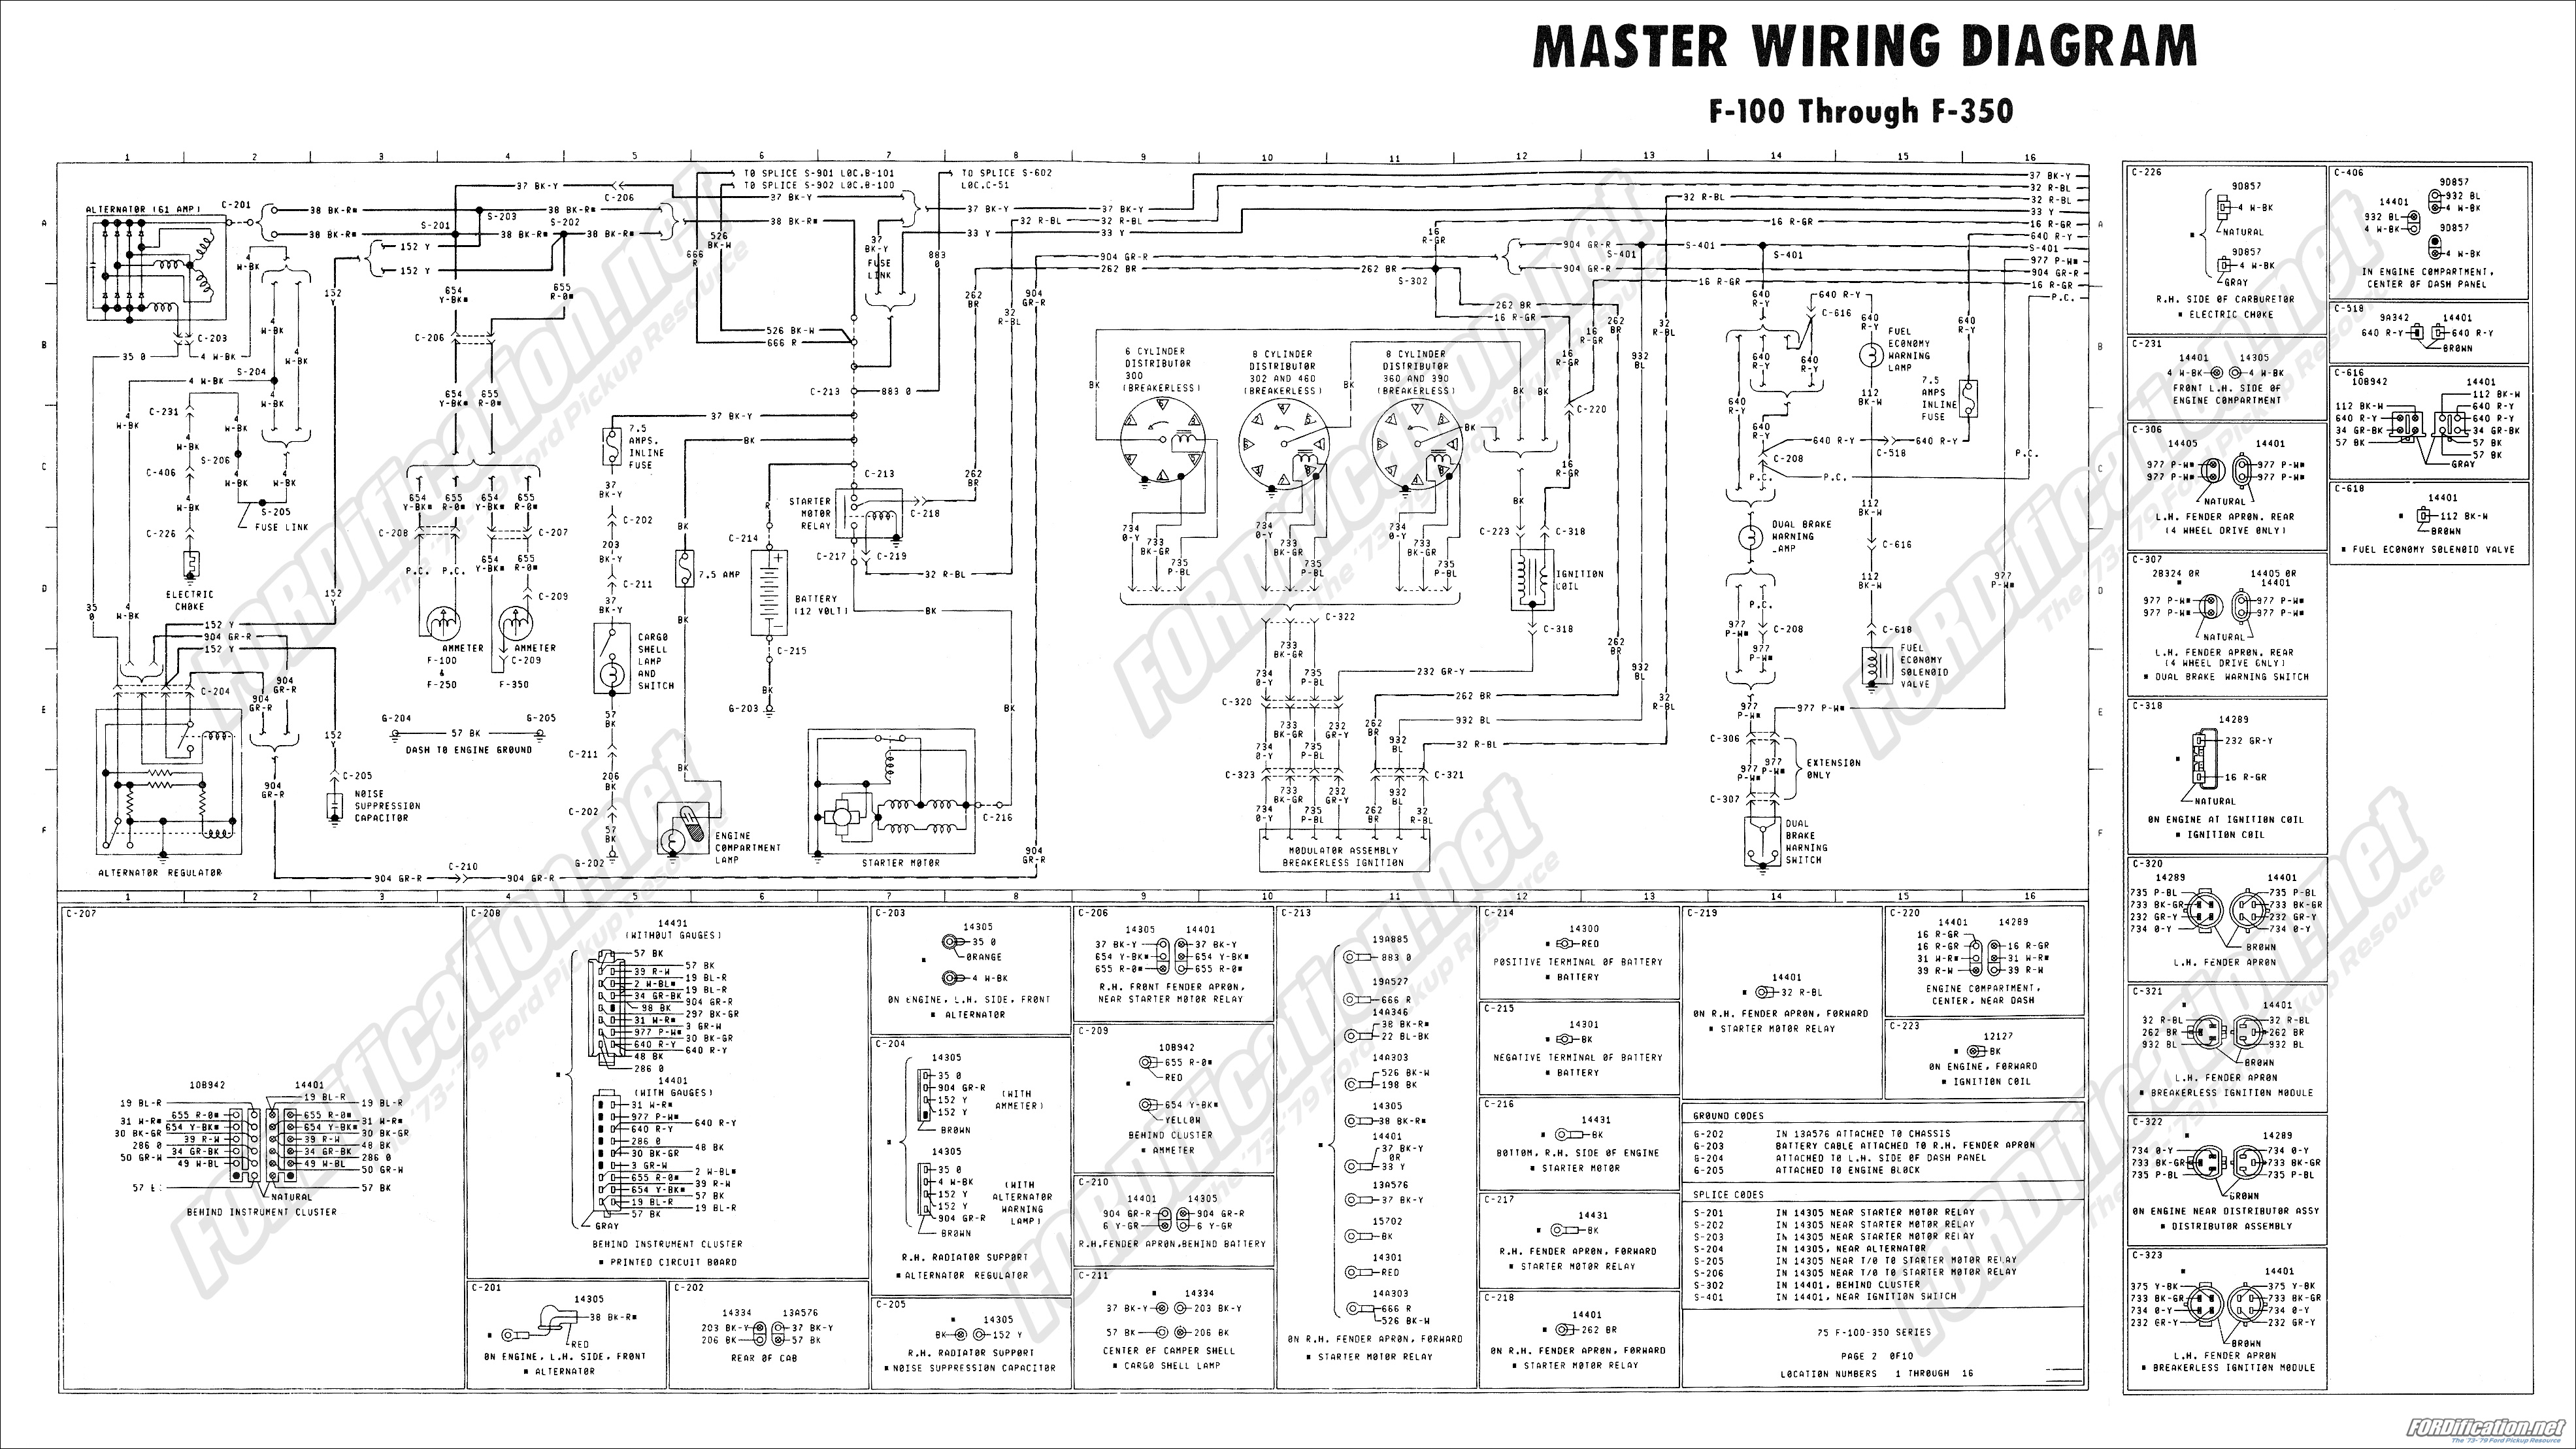 1973-1979 Ford Truck Wiring Diagrams & Schematics ...